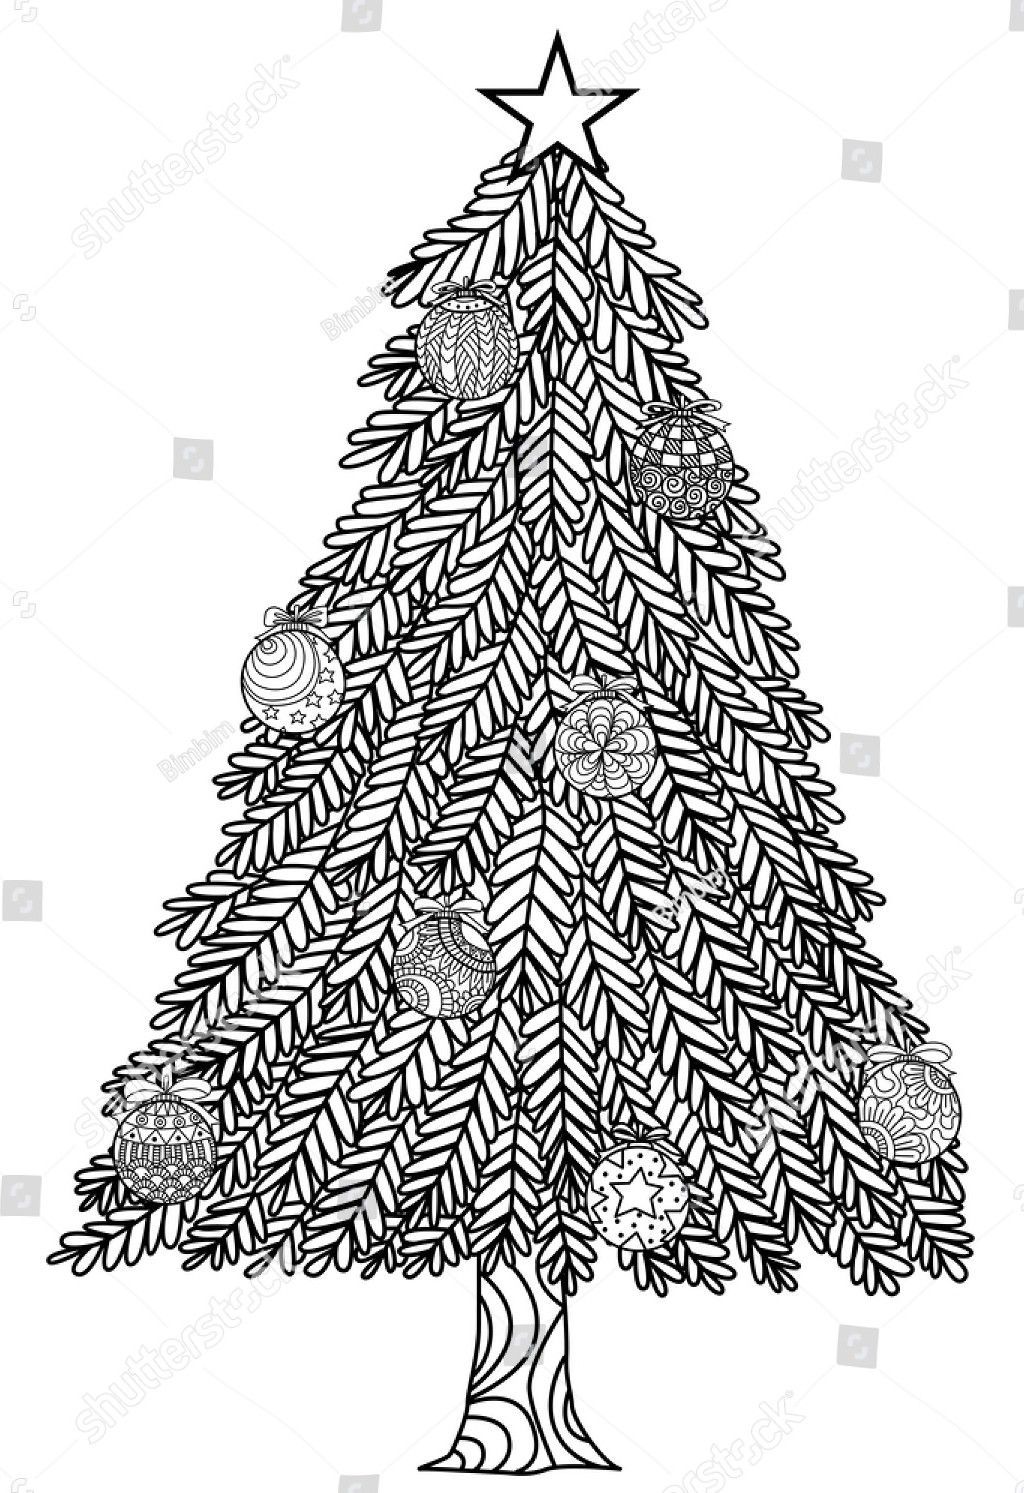 Pin By Hana T On Vv Zima Vanoce Silvestr Andele Christmas Tree Coloring Page Christmas Tree Pictures Tree Coloring Page